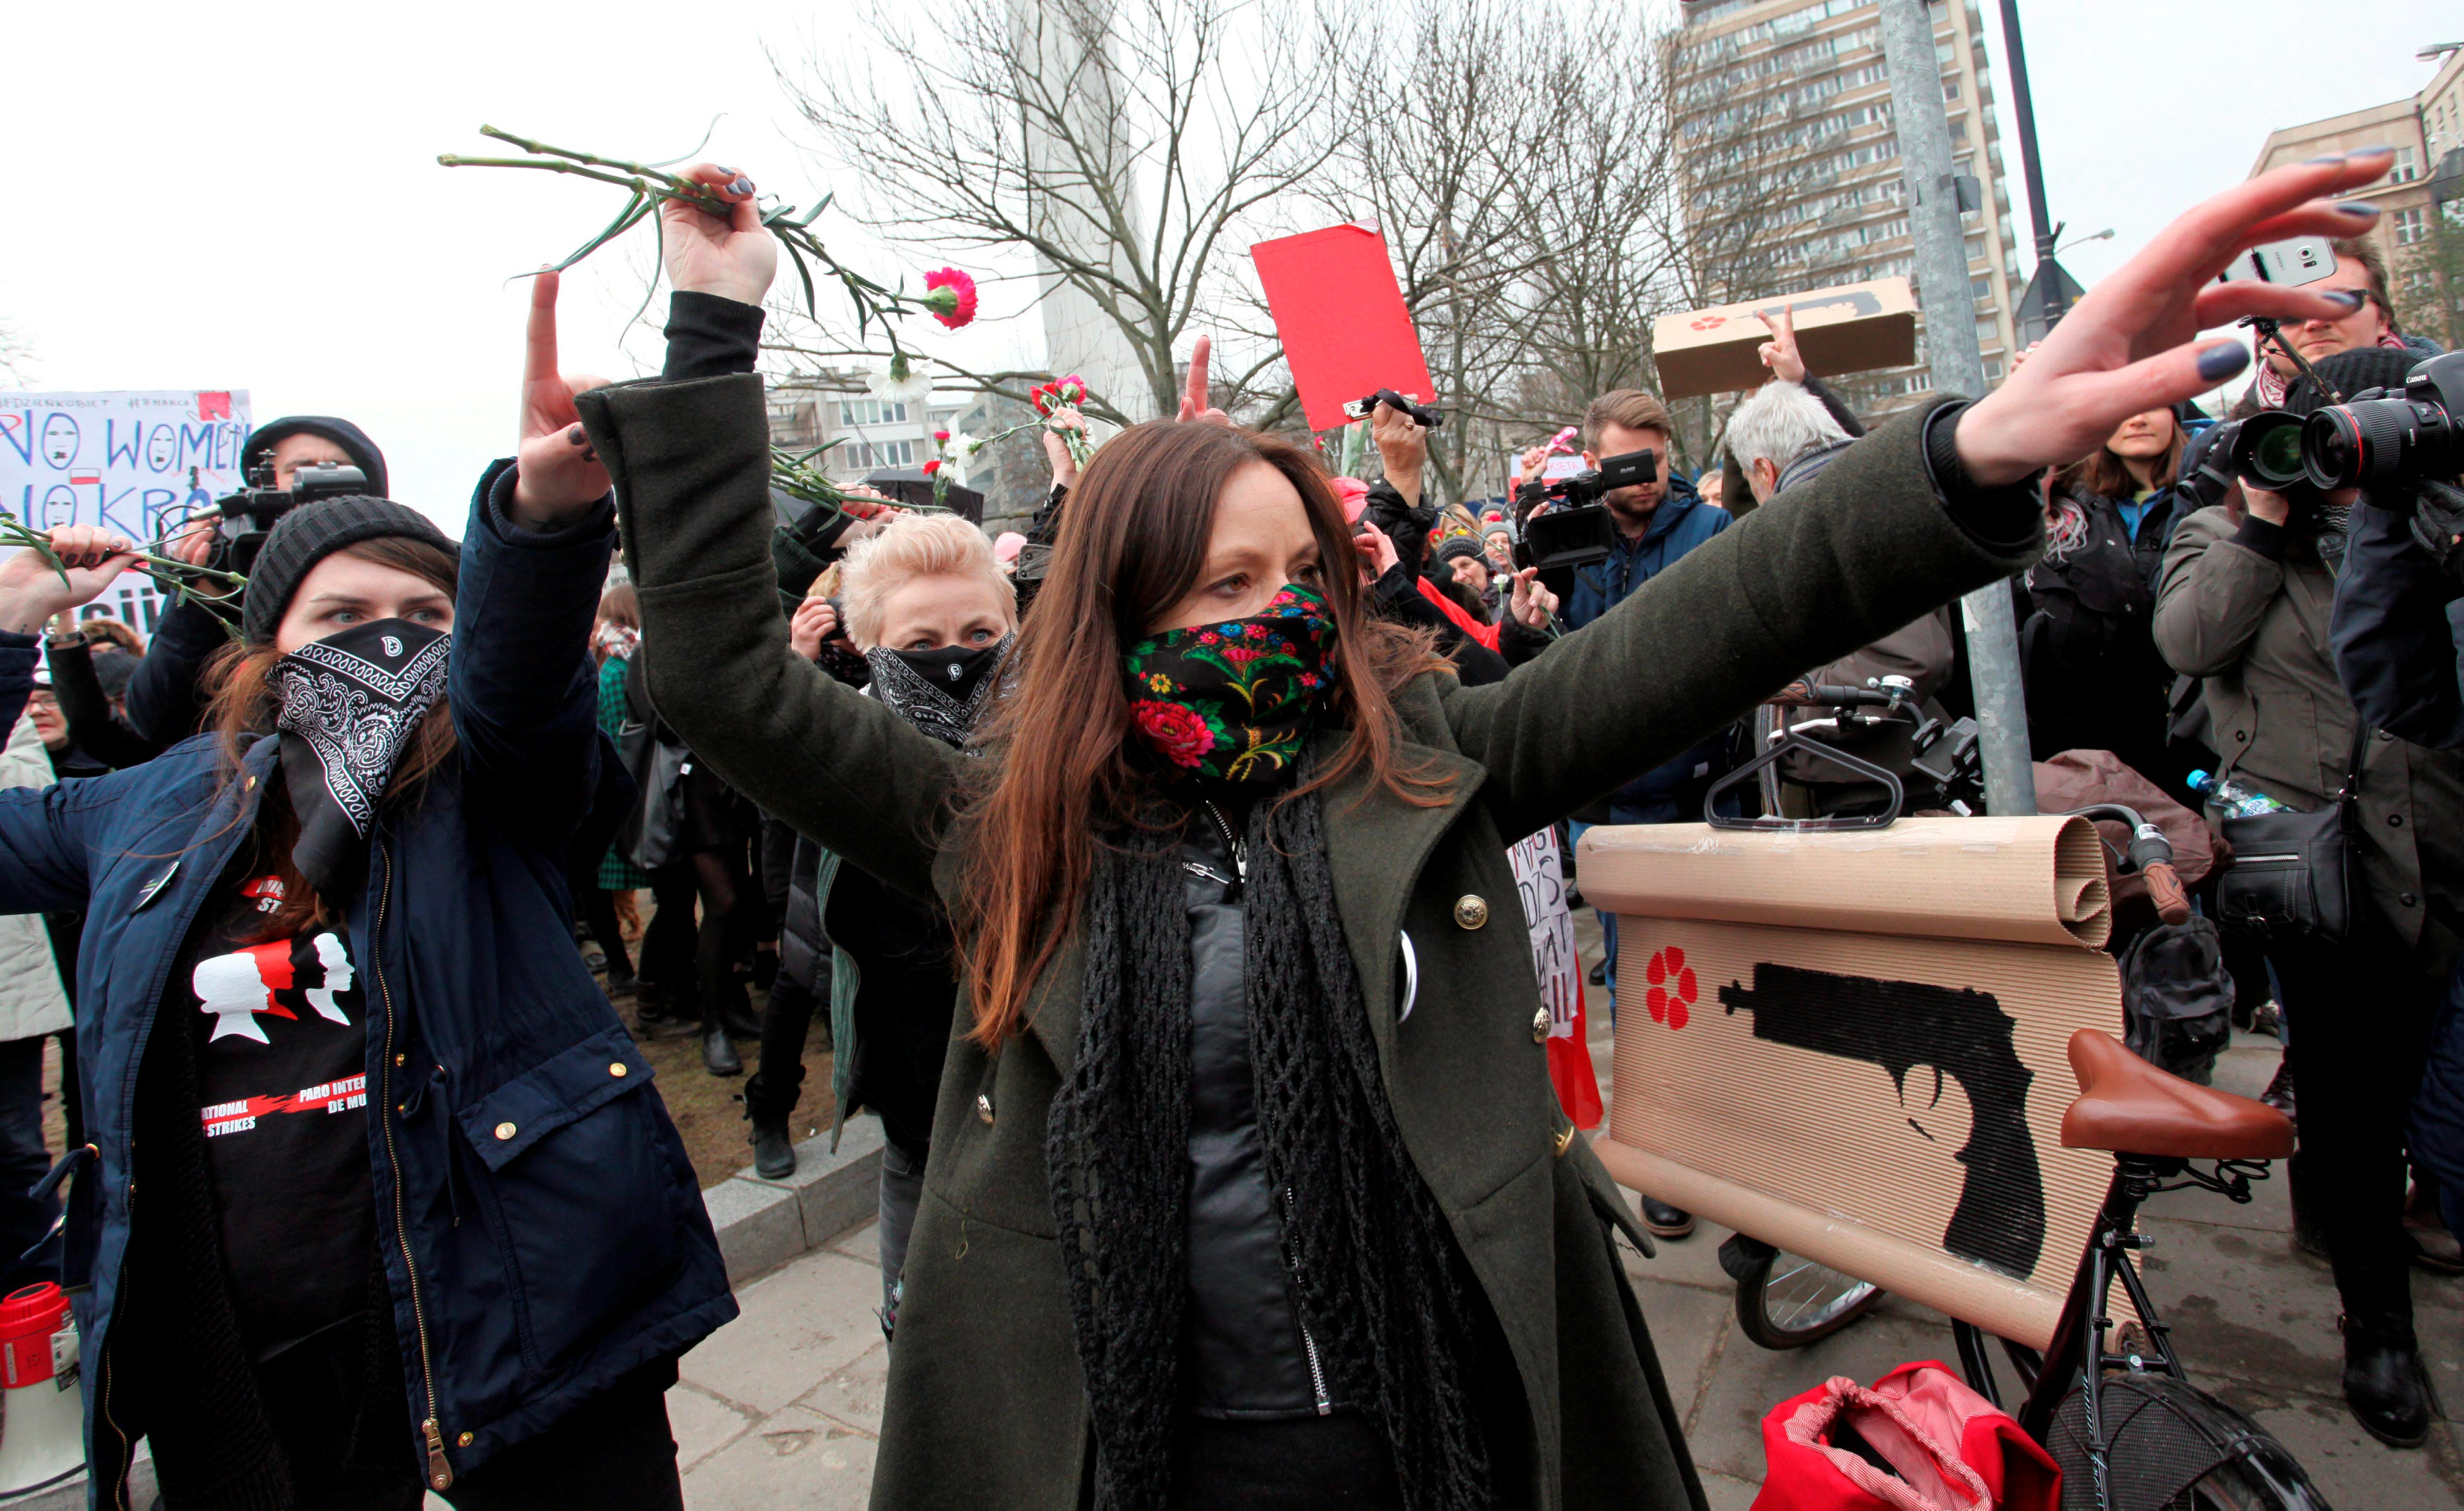 Women throw flowers as they attend a protest during the International Women's Day, outside the Parliament building in Warsaw, Poland March 8, 2017. Agencja Gazeta/Slawomir Kaminski via REUTERS ATTENTION EDITORS - THIS IMAGE WAS PROVIDED BY A THIRD PARTY. FOR EDITORIAL USE ONLY. NOT FOR SALE FOR MARKETING OR ADVERTISING CAMPAIGNS. POLAND OUT. NO COMMERCIAL OR EDITORIAL SALES IN POLAND.